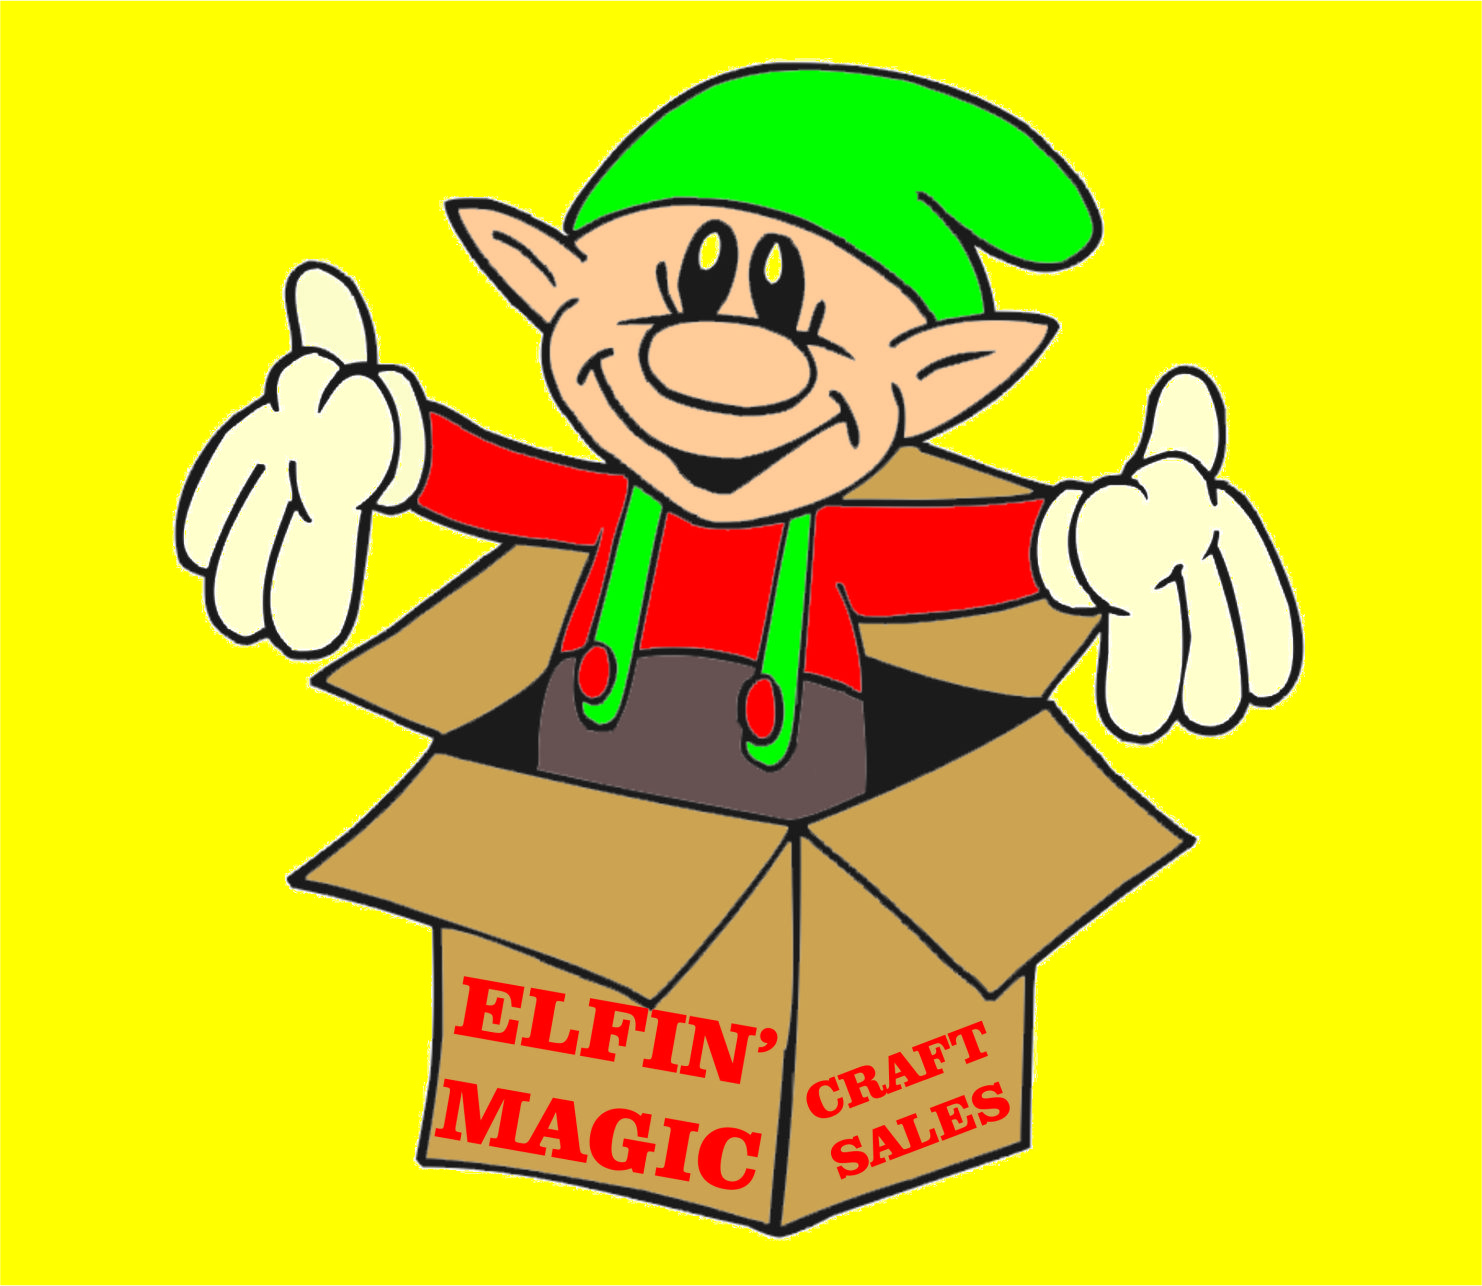 Elfin' Magic Craft Sale